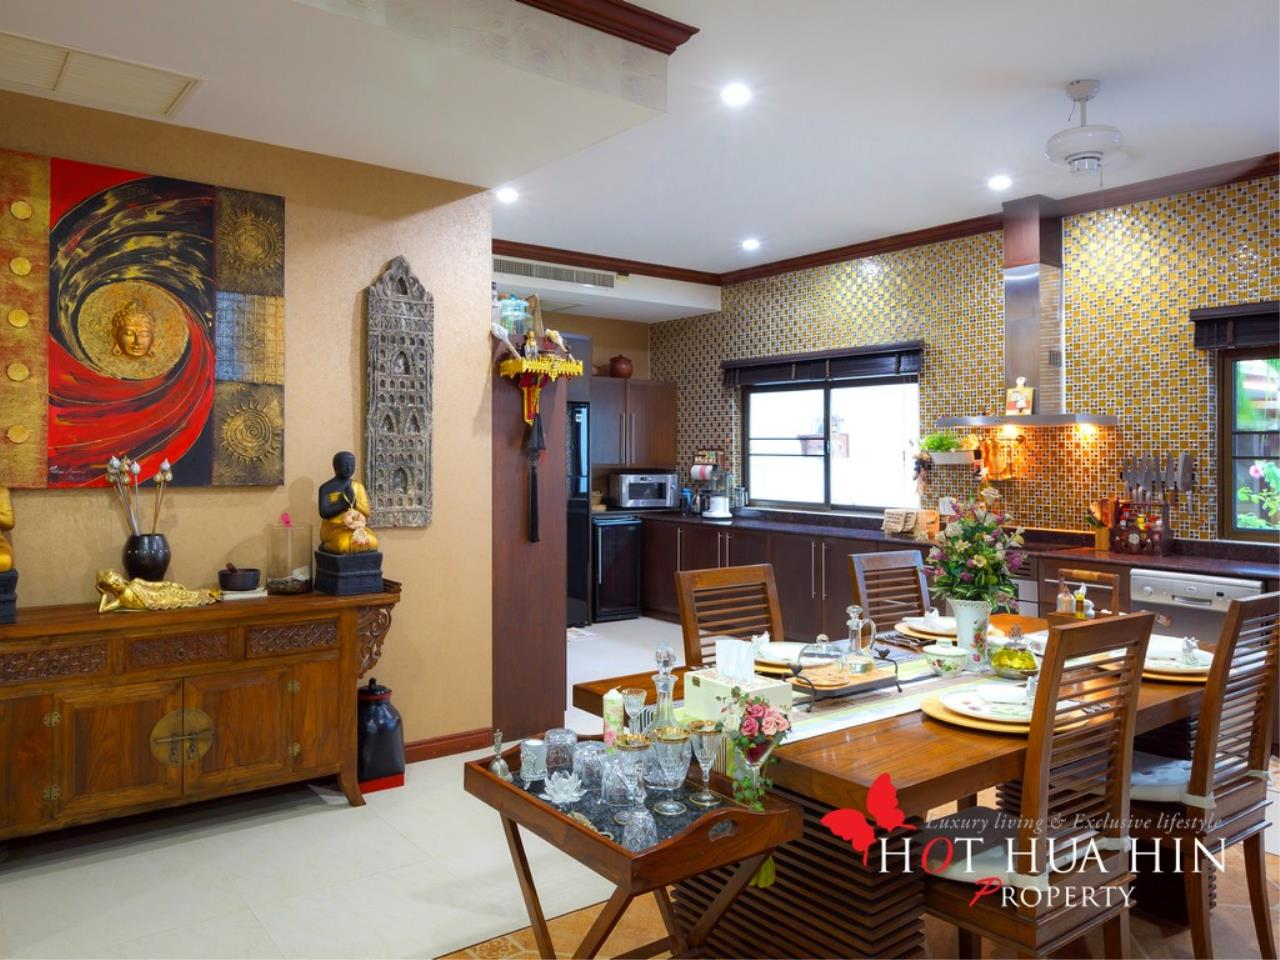 Hot Hua Hin Co. Ltd. Agency's Well Built Home With Stunning Gardens And Two Full Kitchens 8